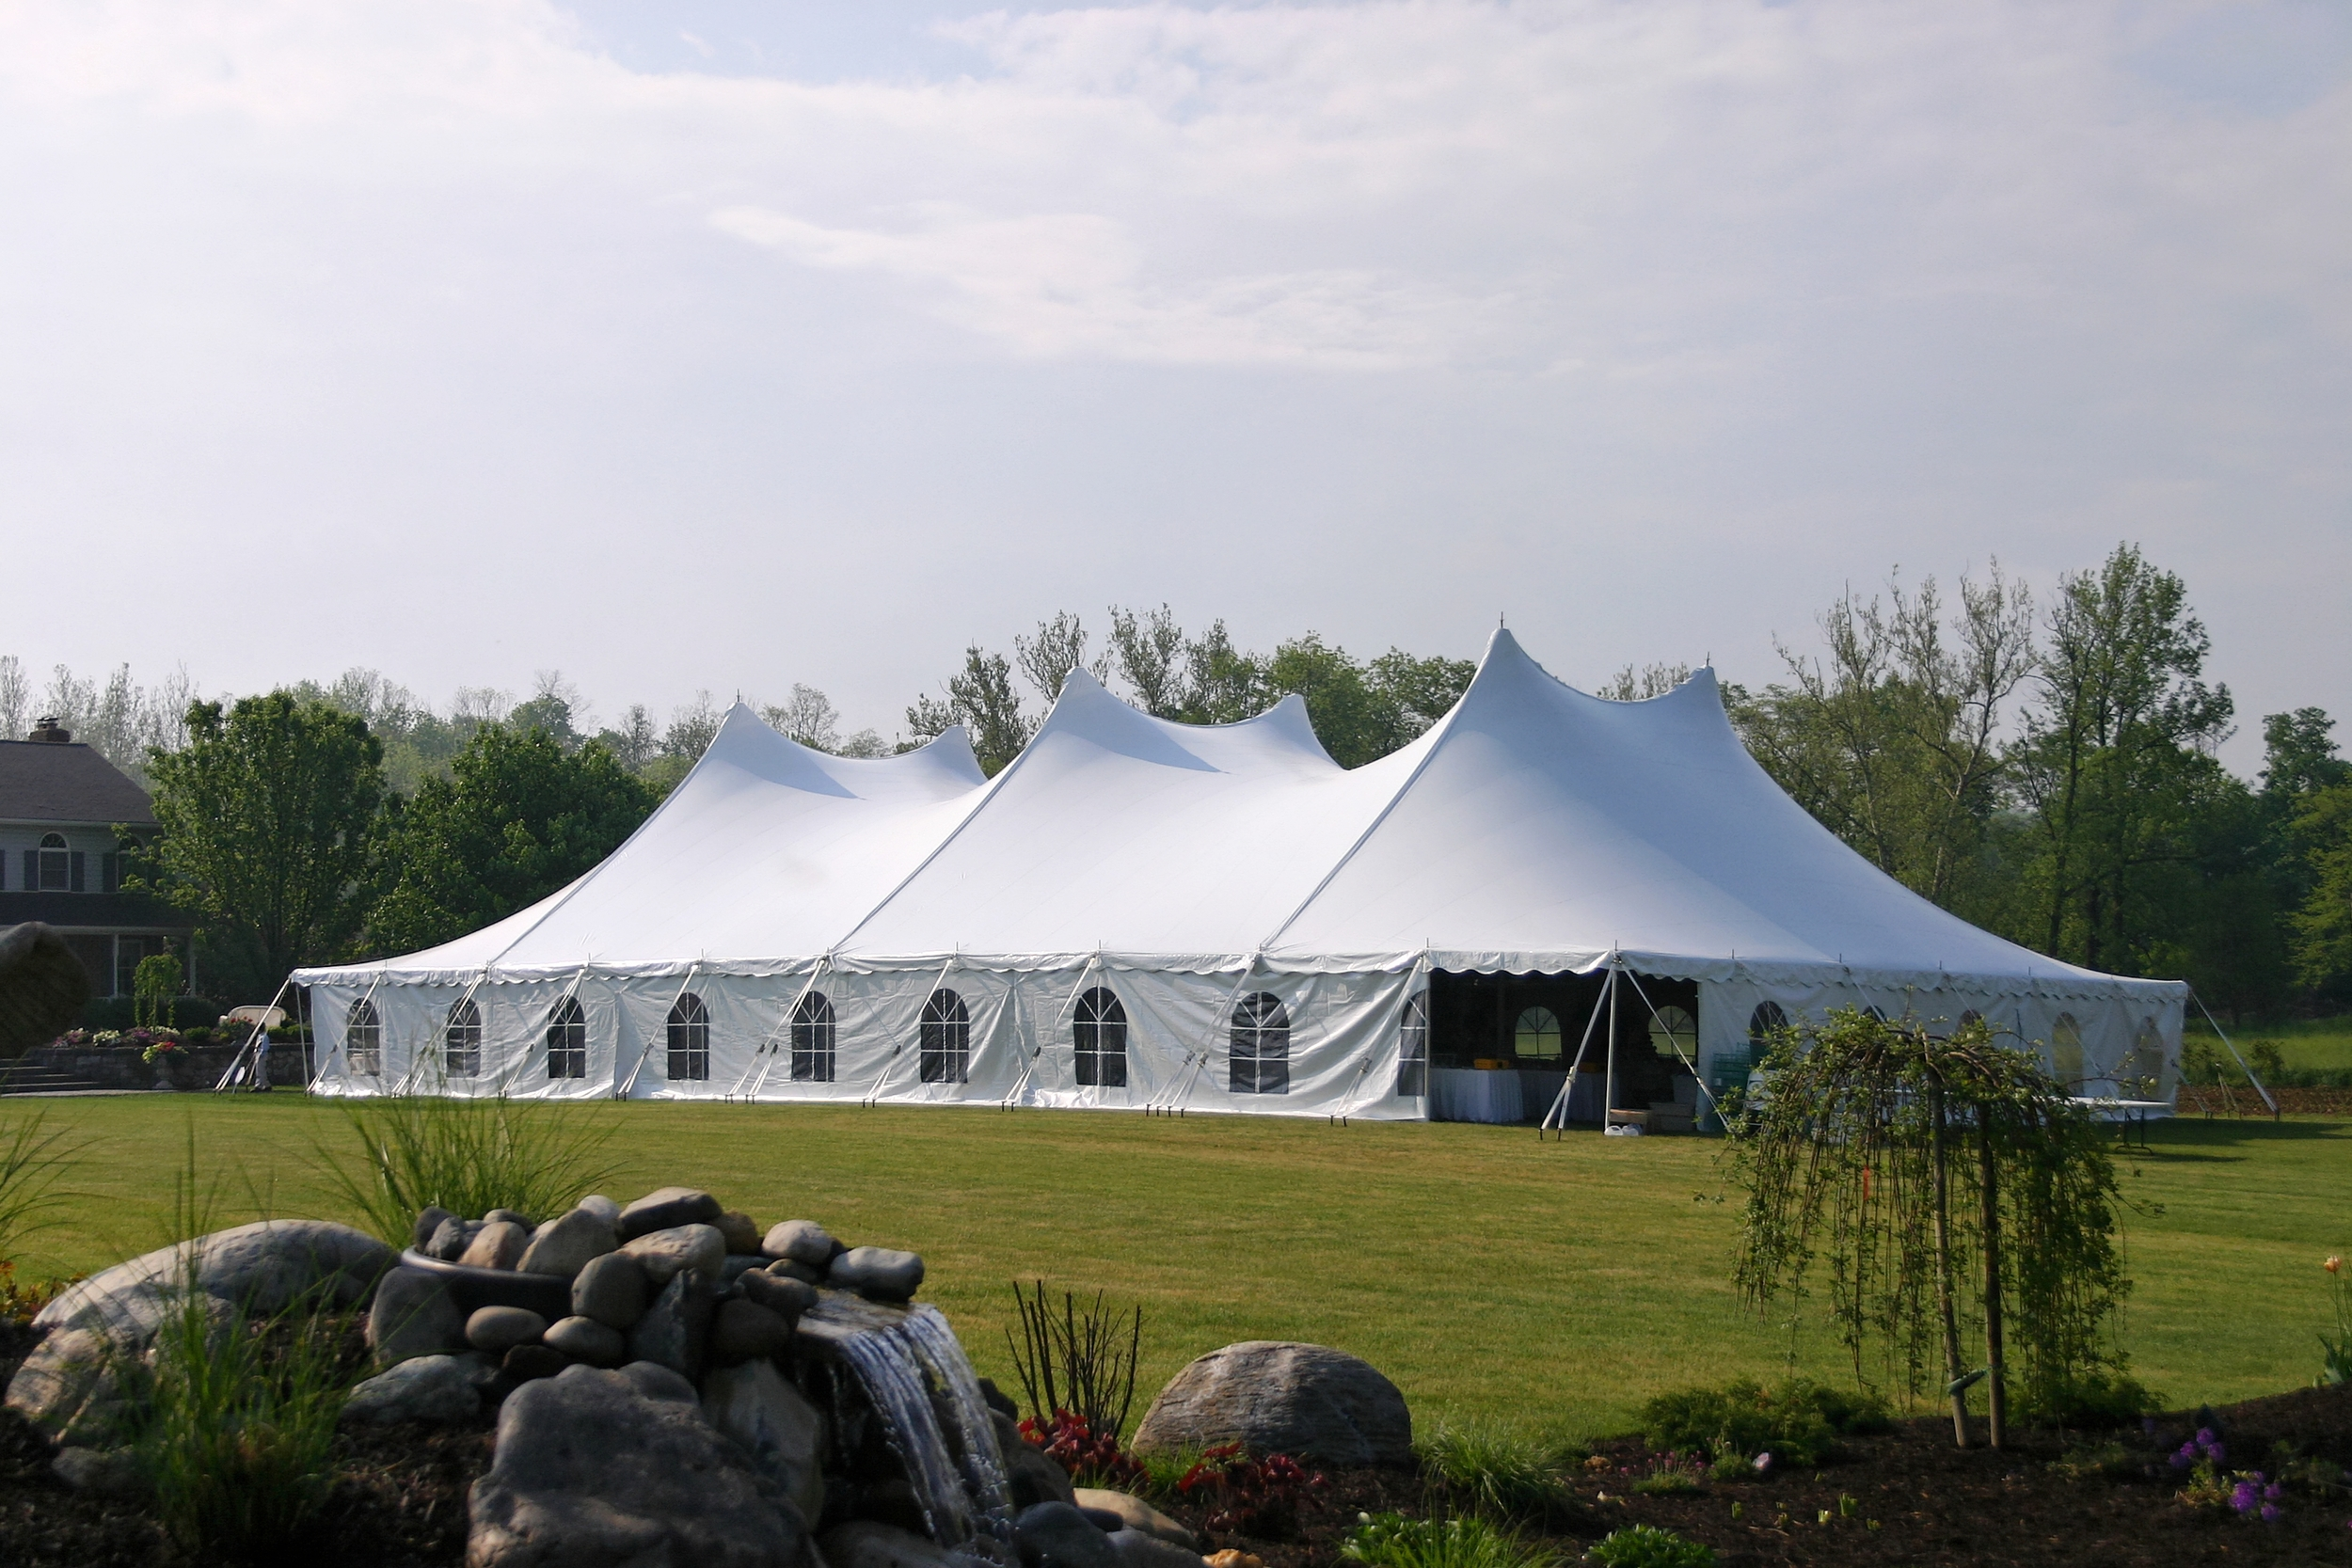 Wedding tents for rent in Palmyra, PA